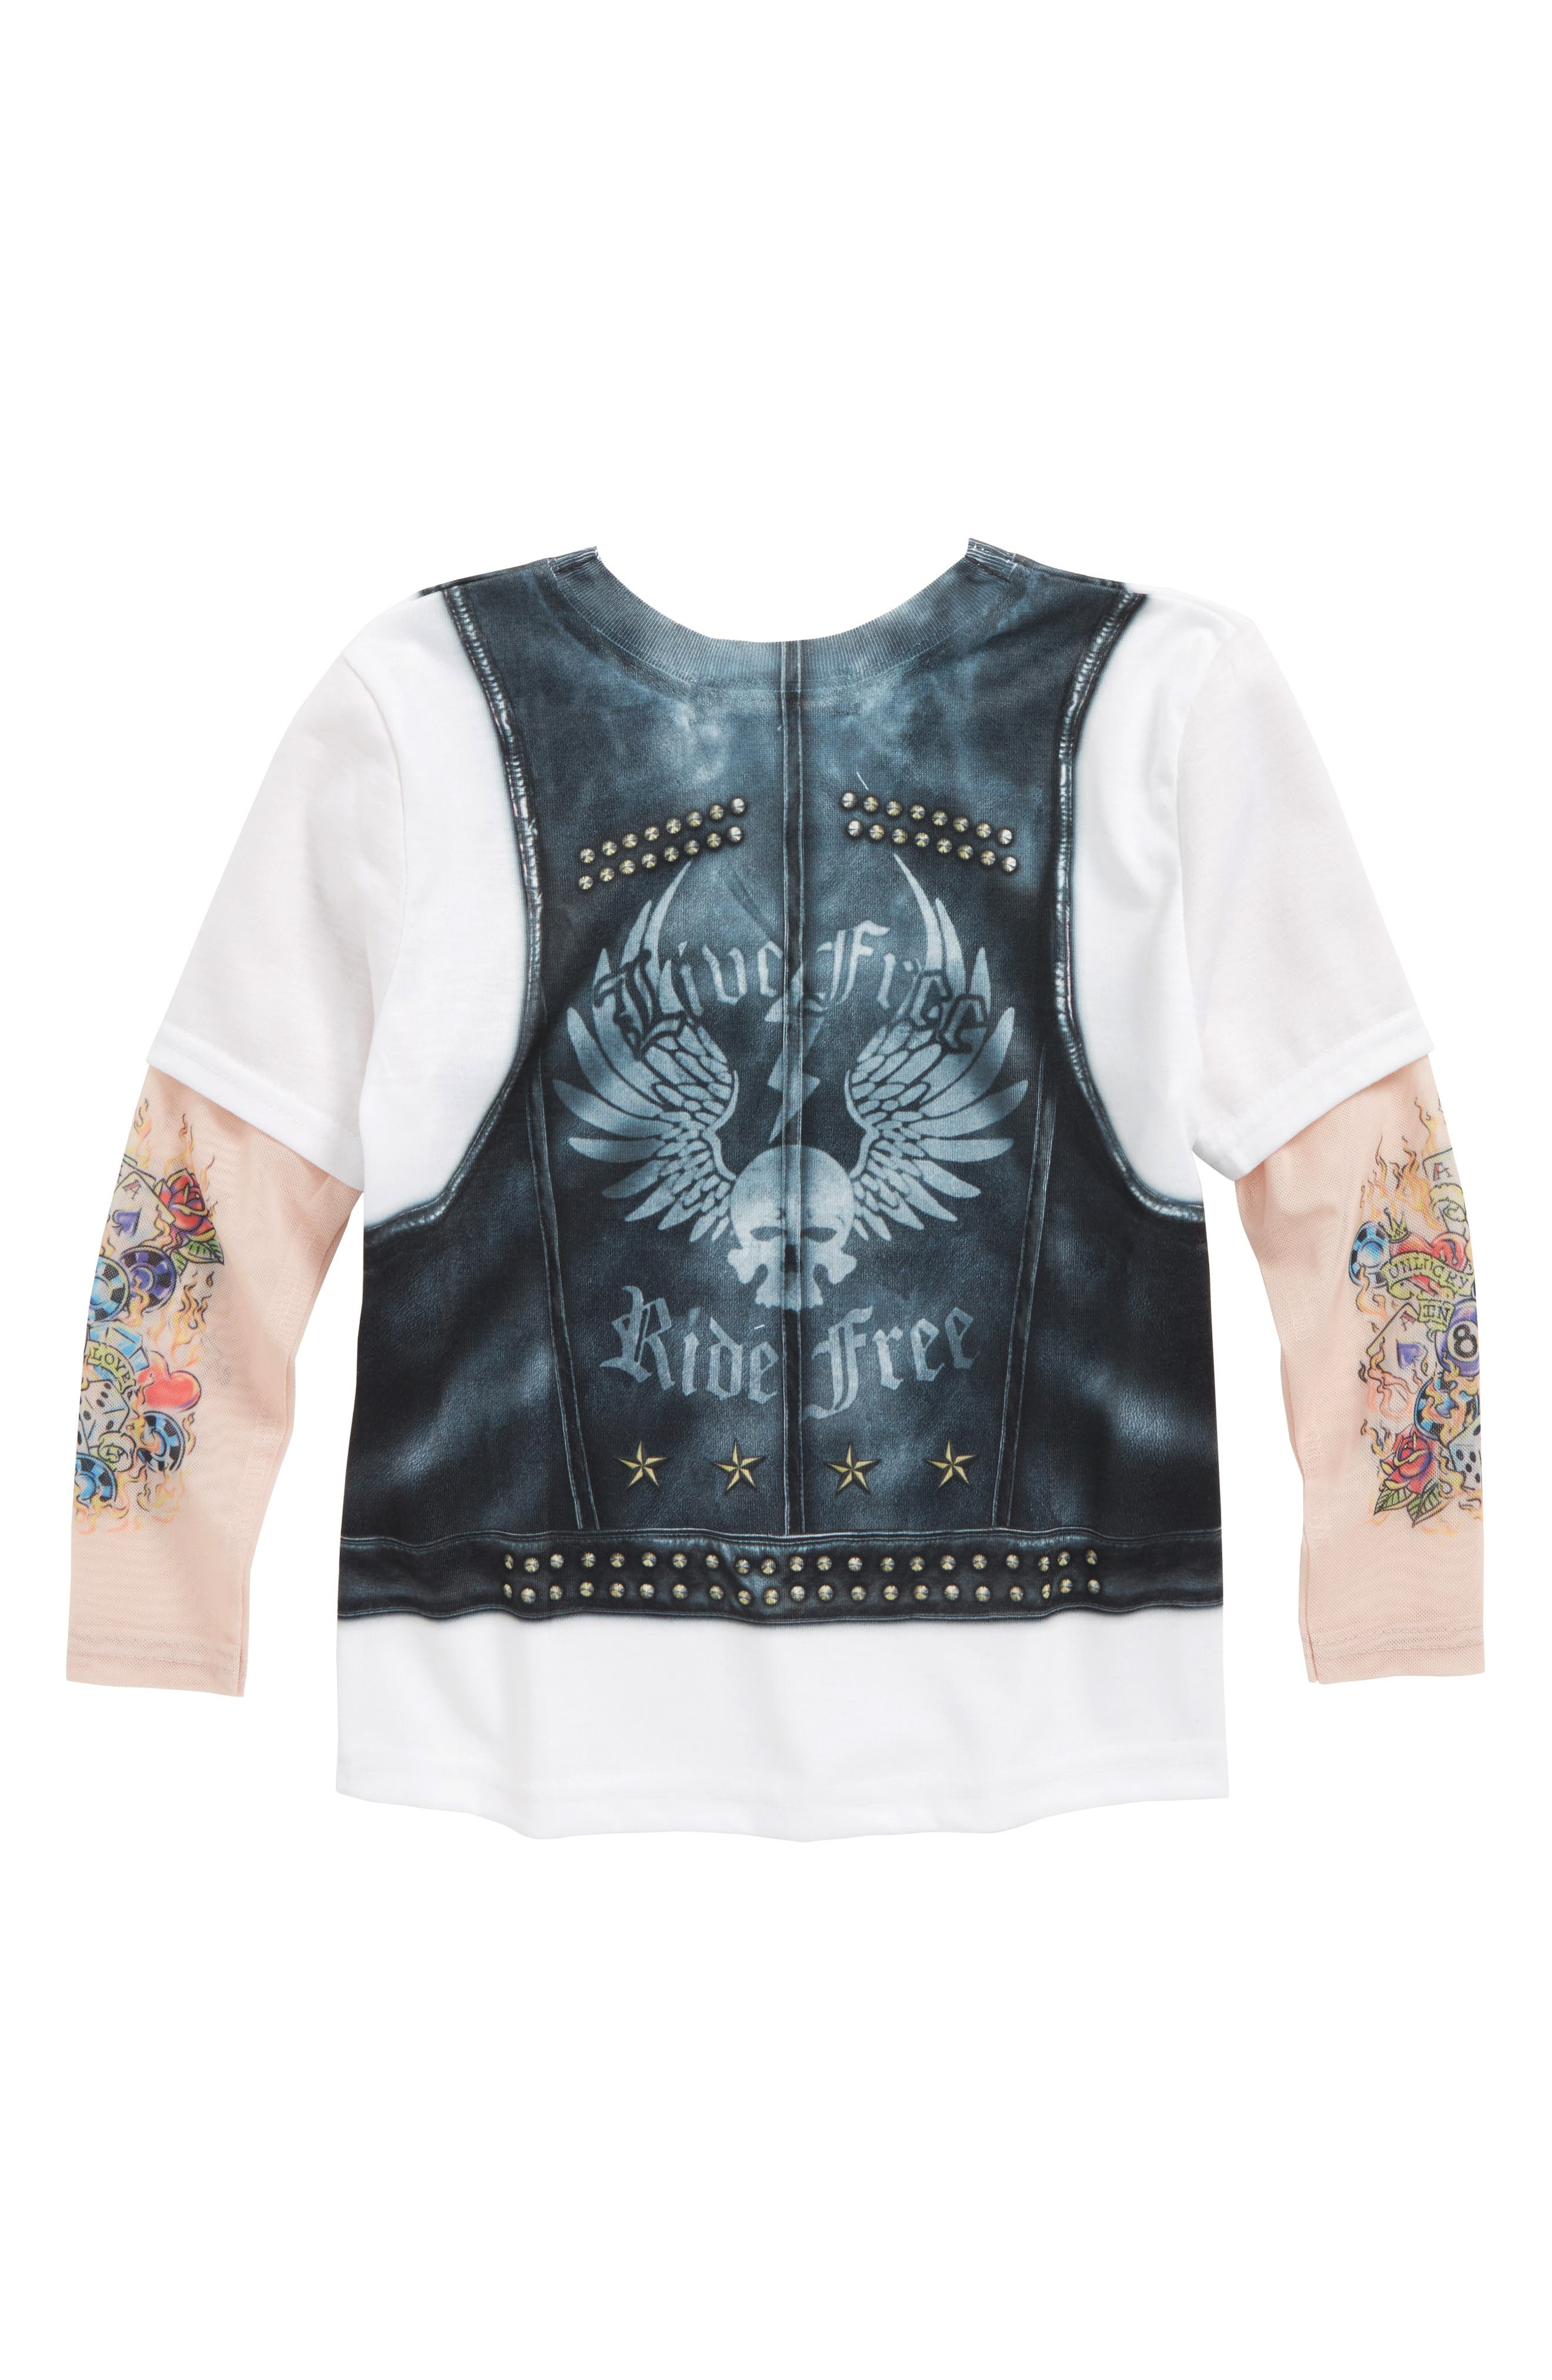 Alternate Image 2  - Faux Real Biker Print T-Shirt with Tattoo Print Sleeves (Toddler Boys)